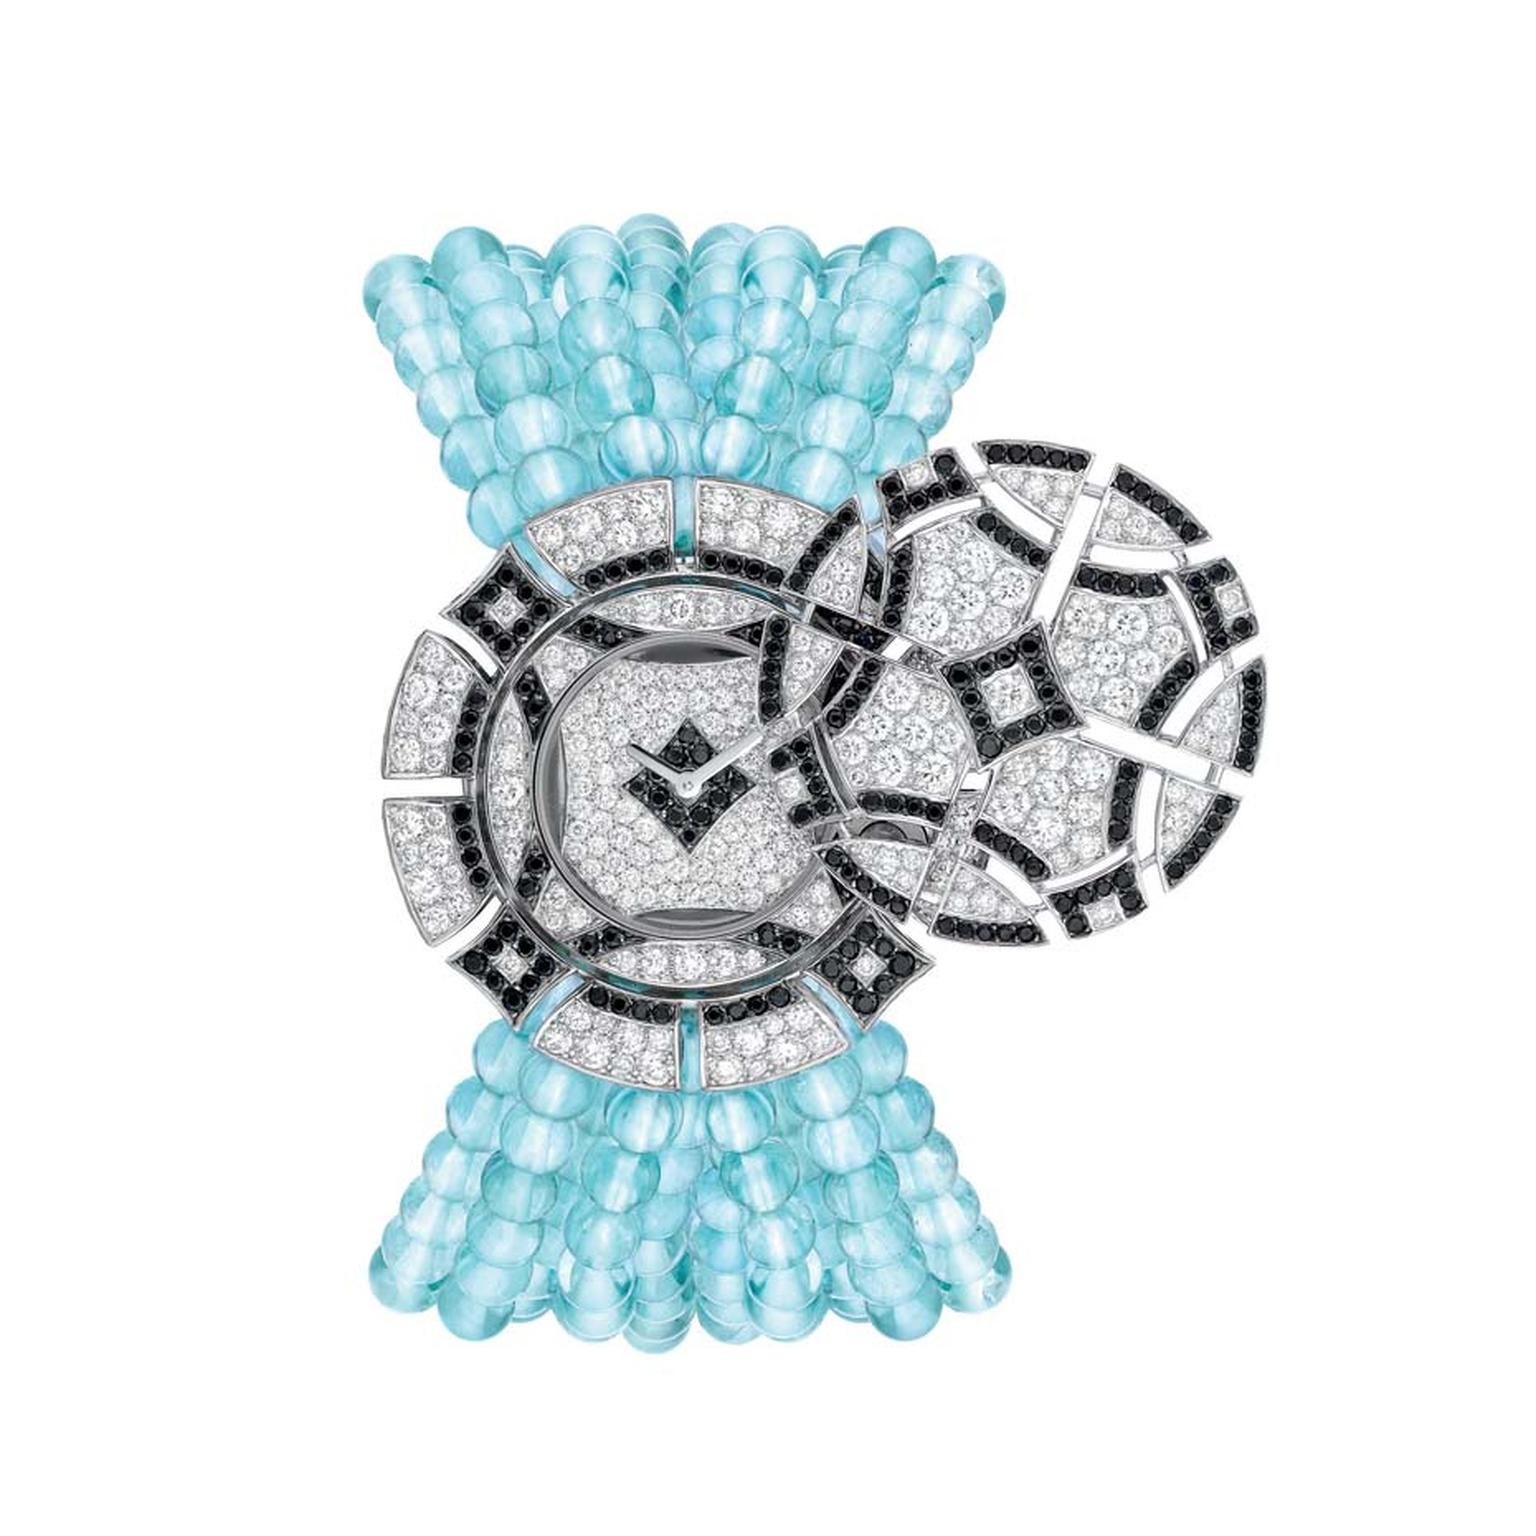 Chanel Café Society Cruise secret watch with an aquamarine bead bracelet contrasted with black spinels and diamonds.